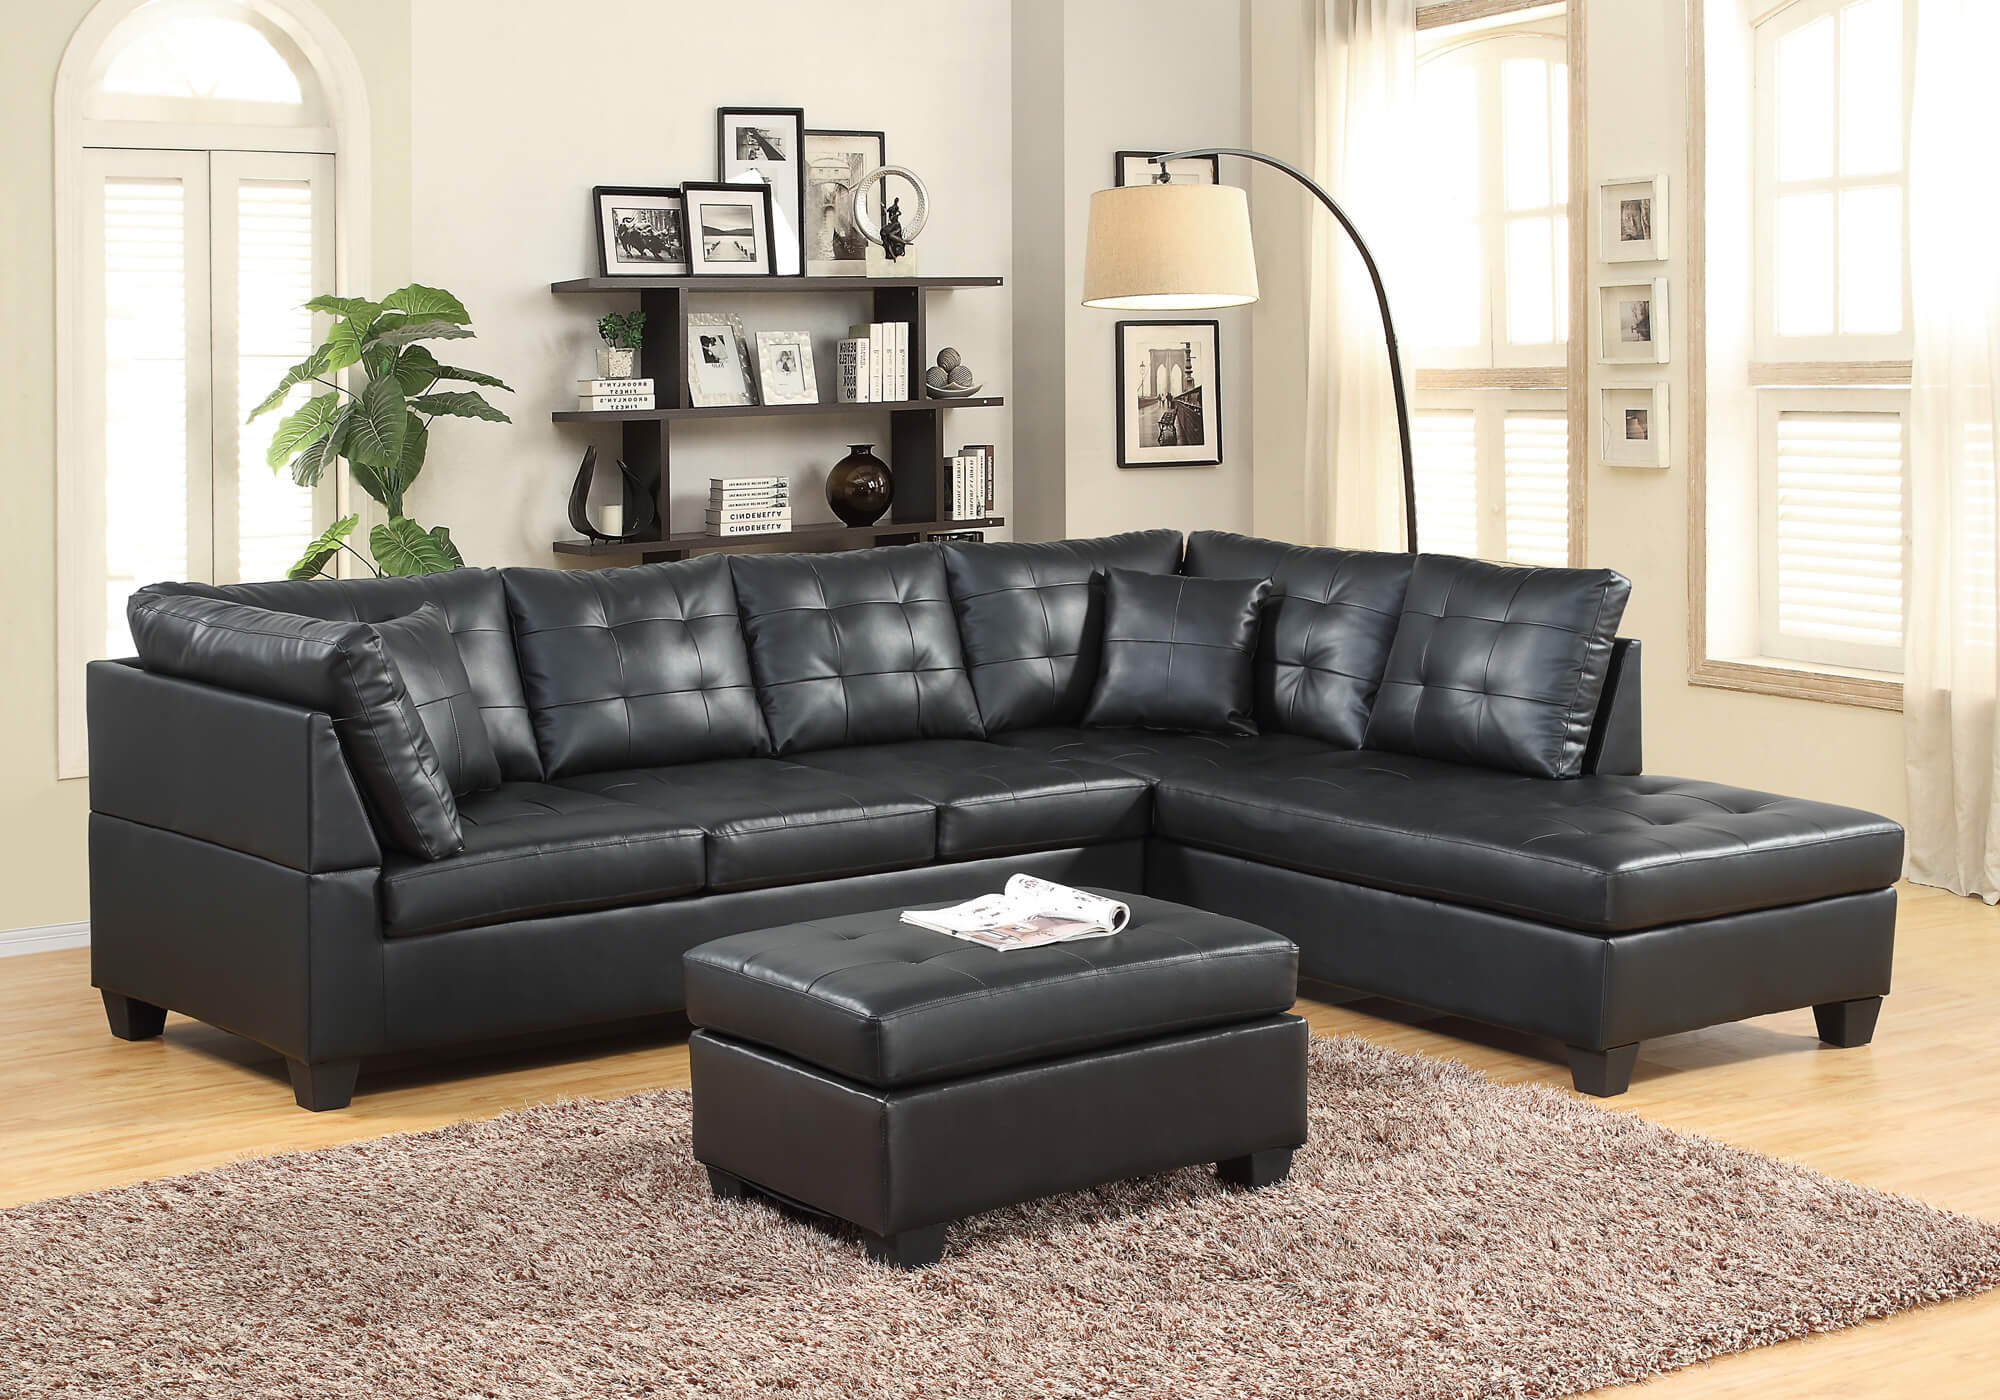 Black leather like sectiona sectional sofa sets for Living room with black leather furniture